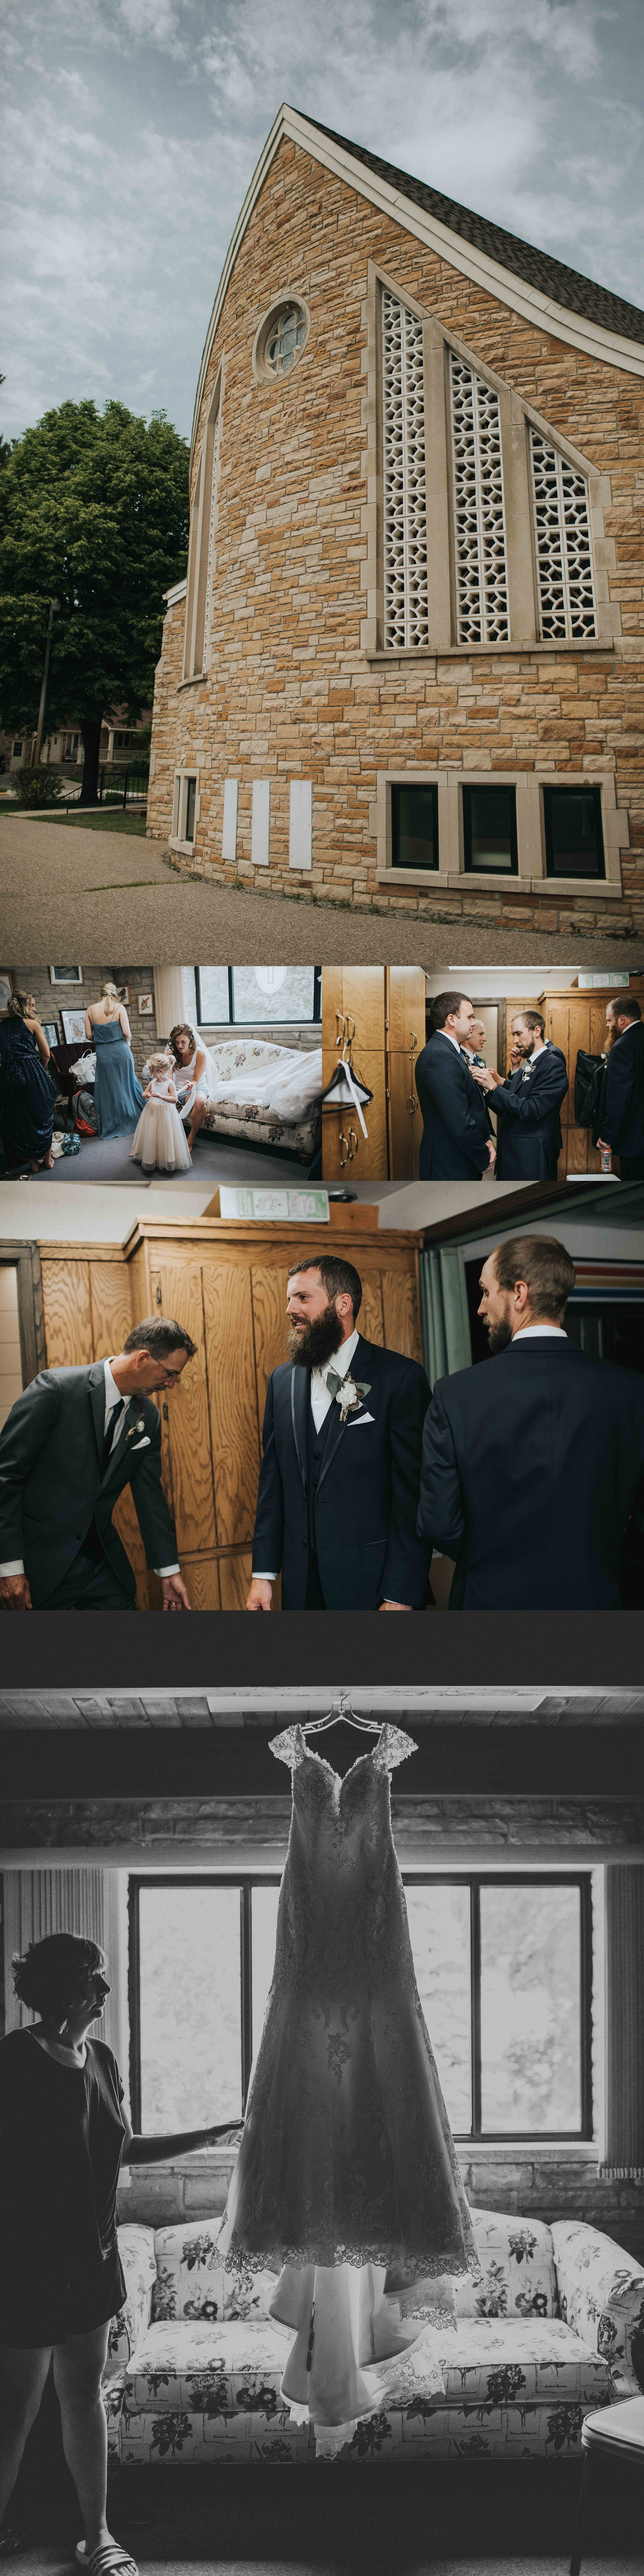 Bulls Eye Country Club Wedding Photographer Wisconsin Rapids Chloe Ann Photography_0001.jpg